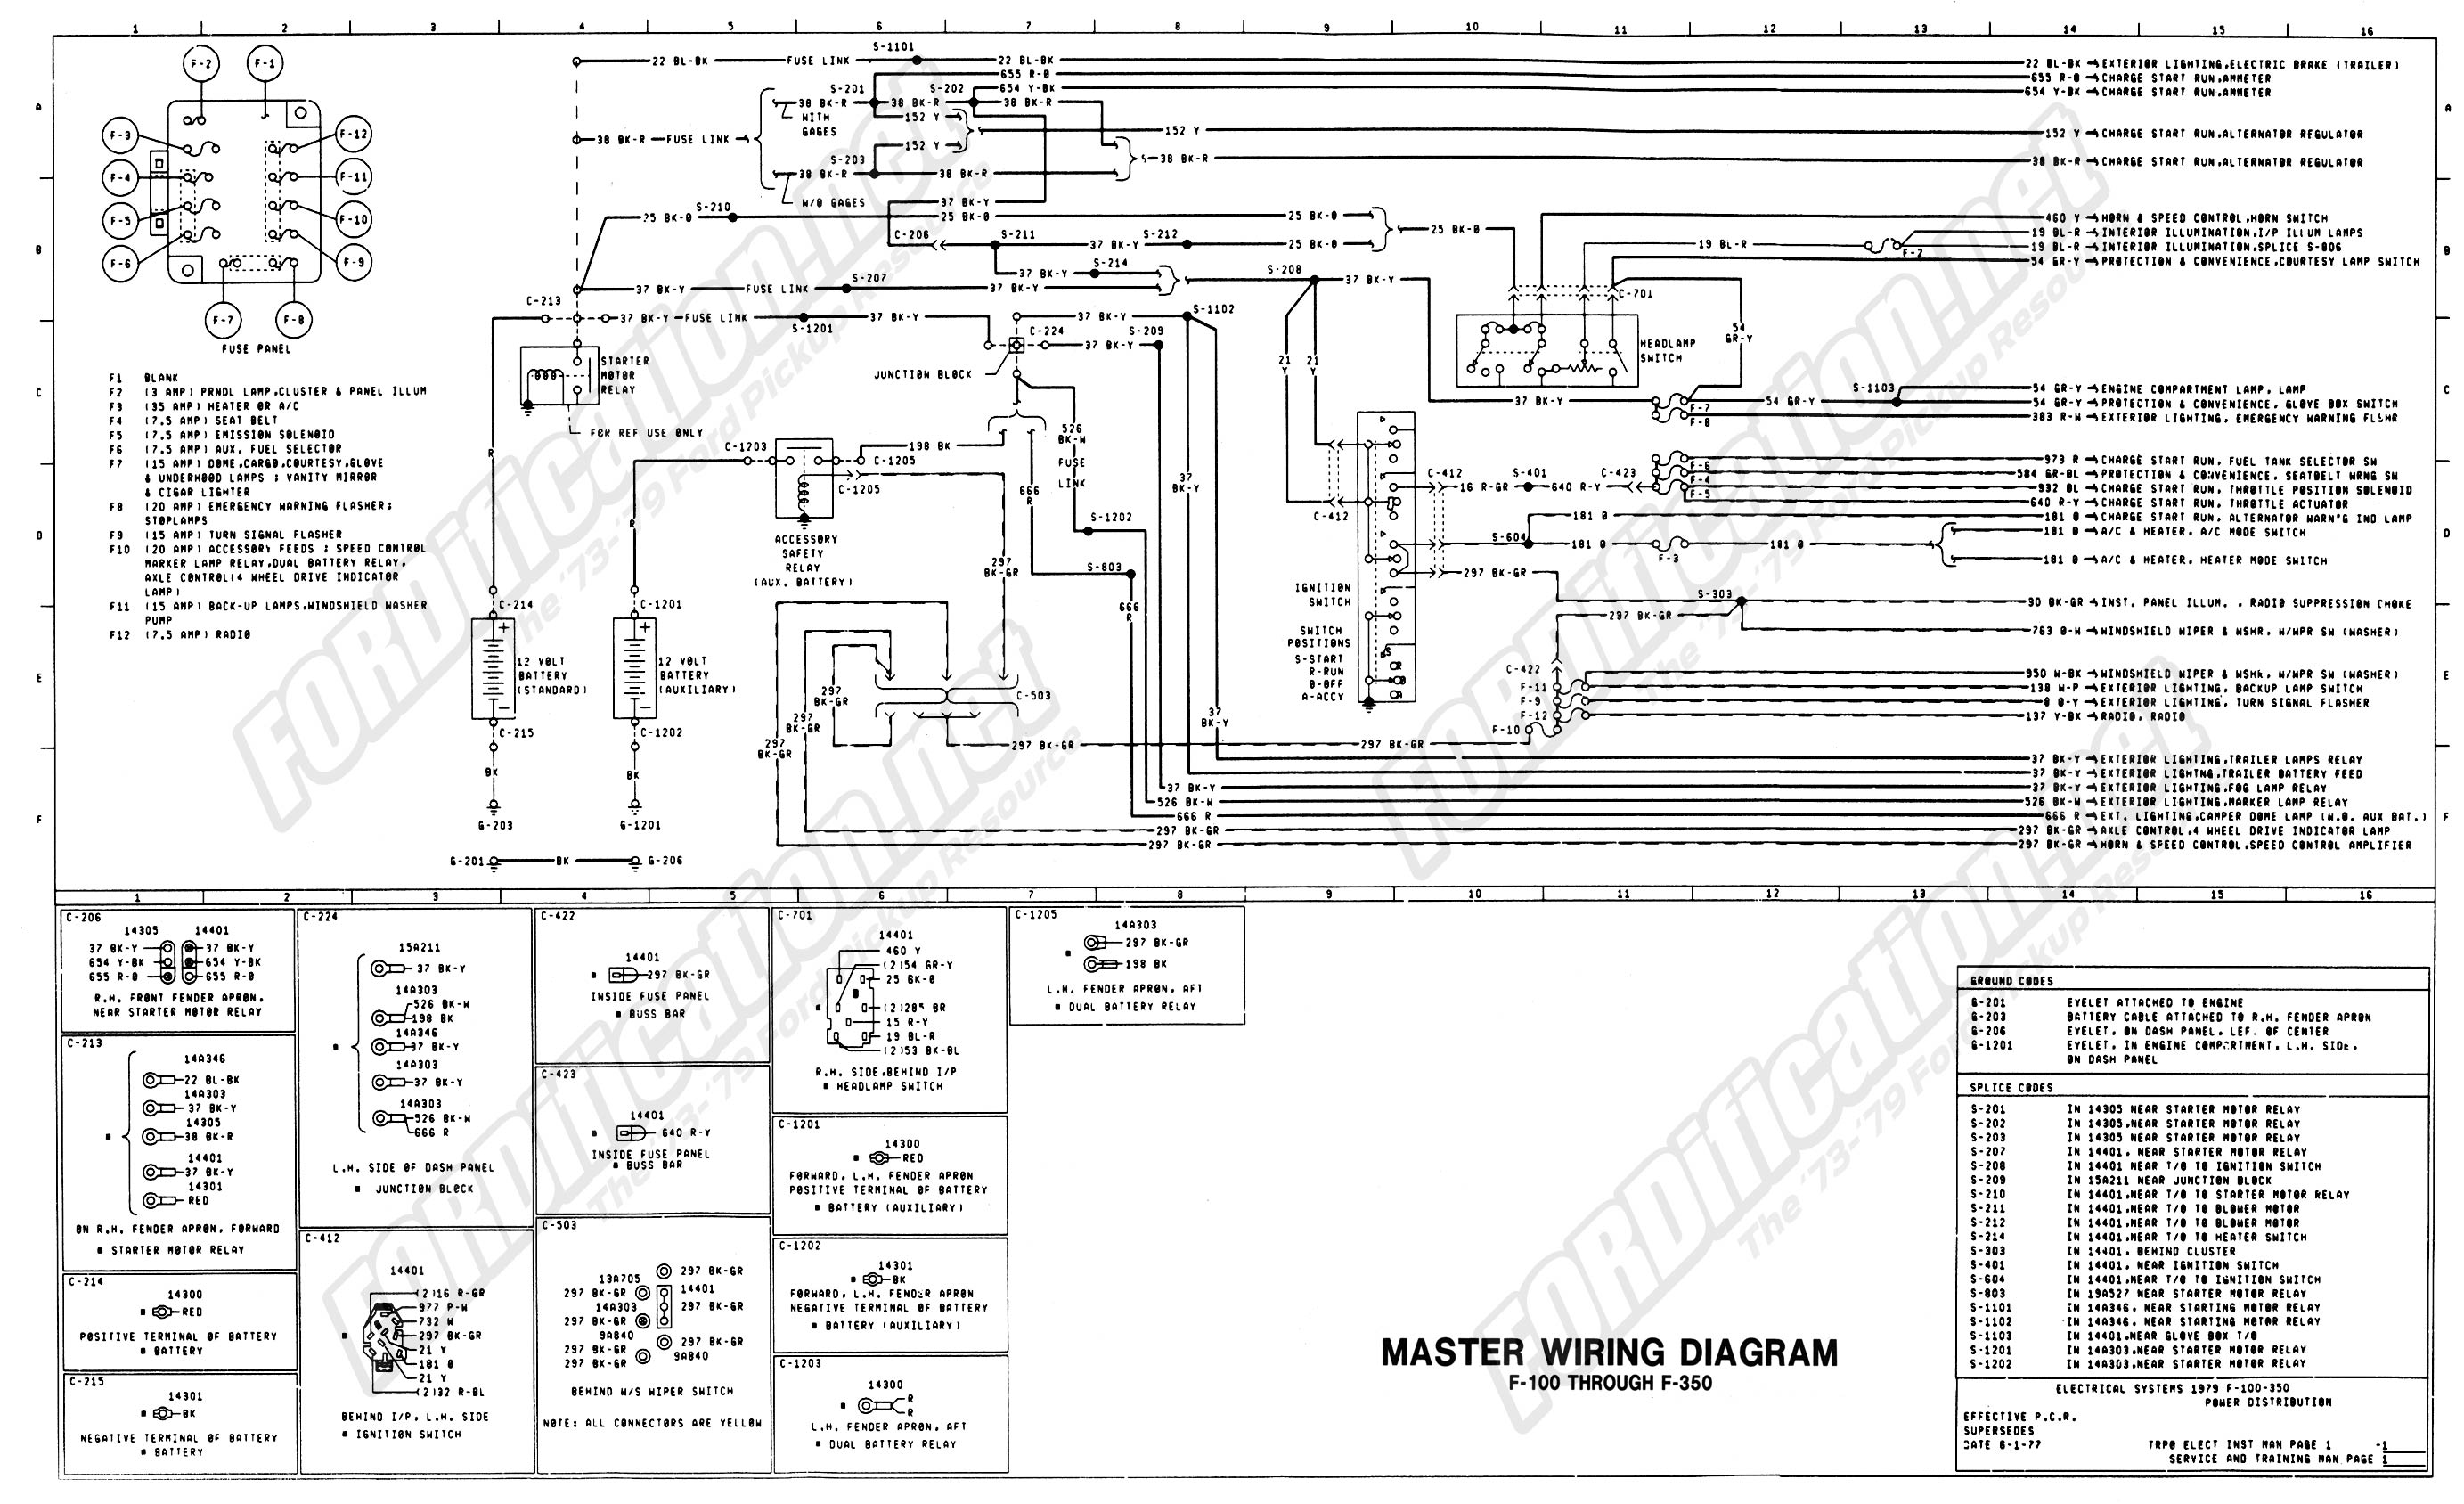 wiring_79master_1of9 1973 1979 ford truck wiring diagrams & schematics fordification net international truck wiring diagram at aneh.co